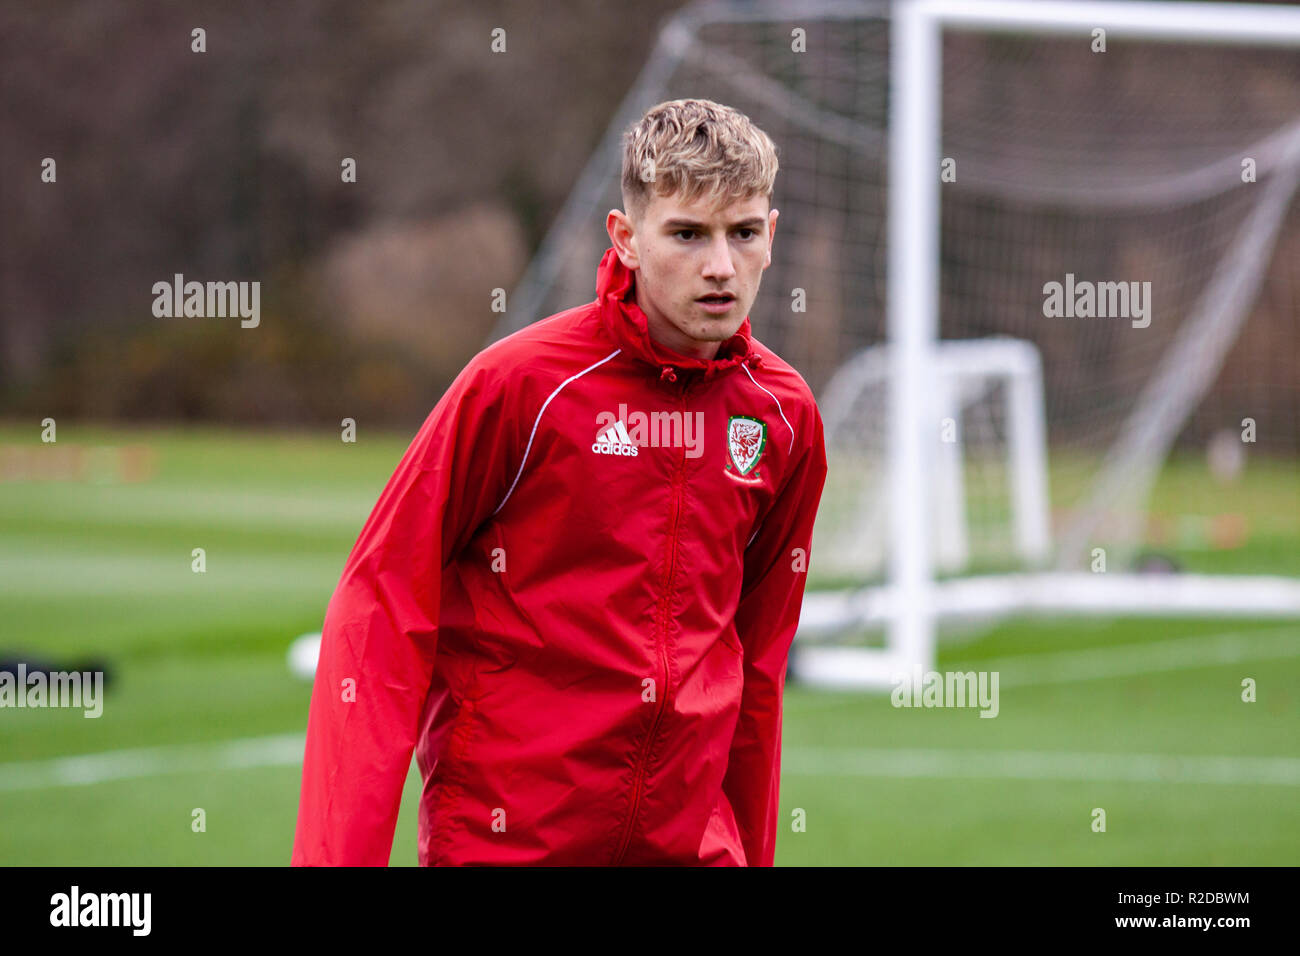 Cardiff, Wales. 15th November, 2018. Wales midfielder David Brooks trains ahead of their upcoming friendly against Albania. Lewis Mitchell/YCPD. Stock Photo